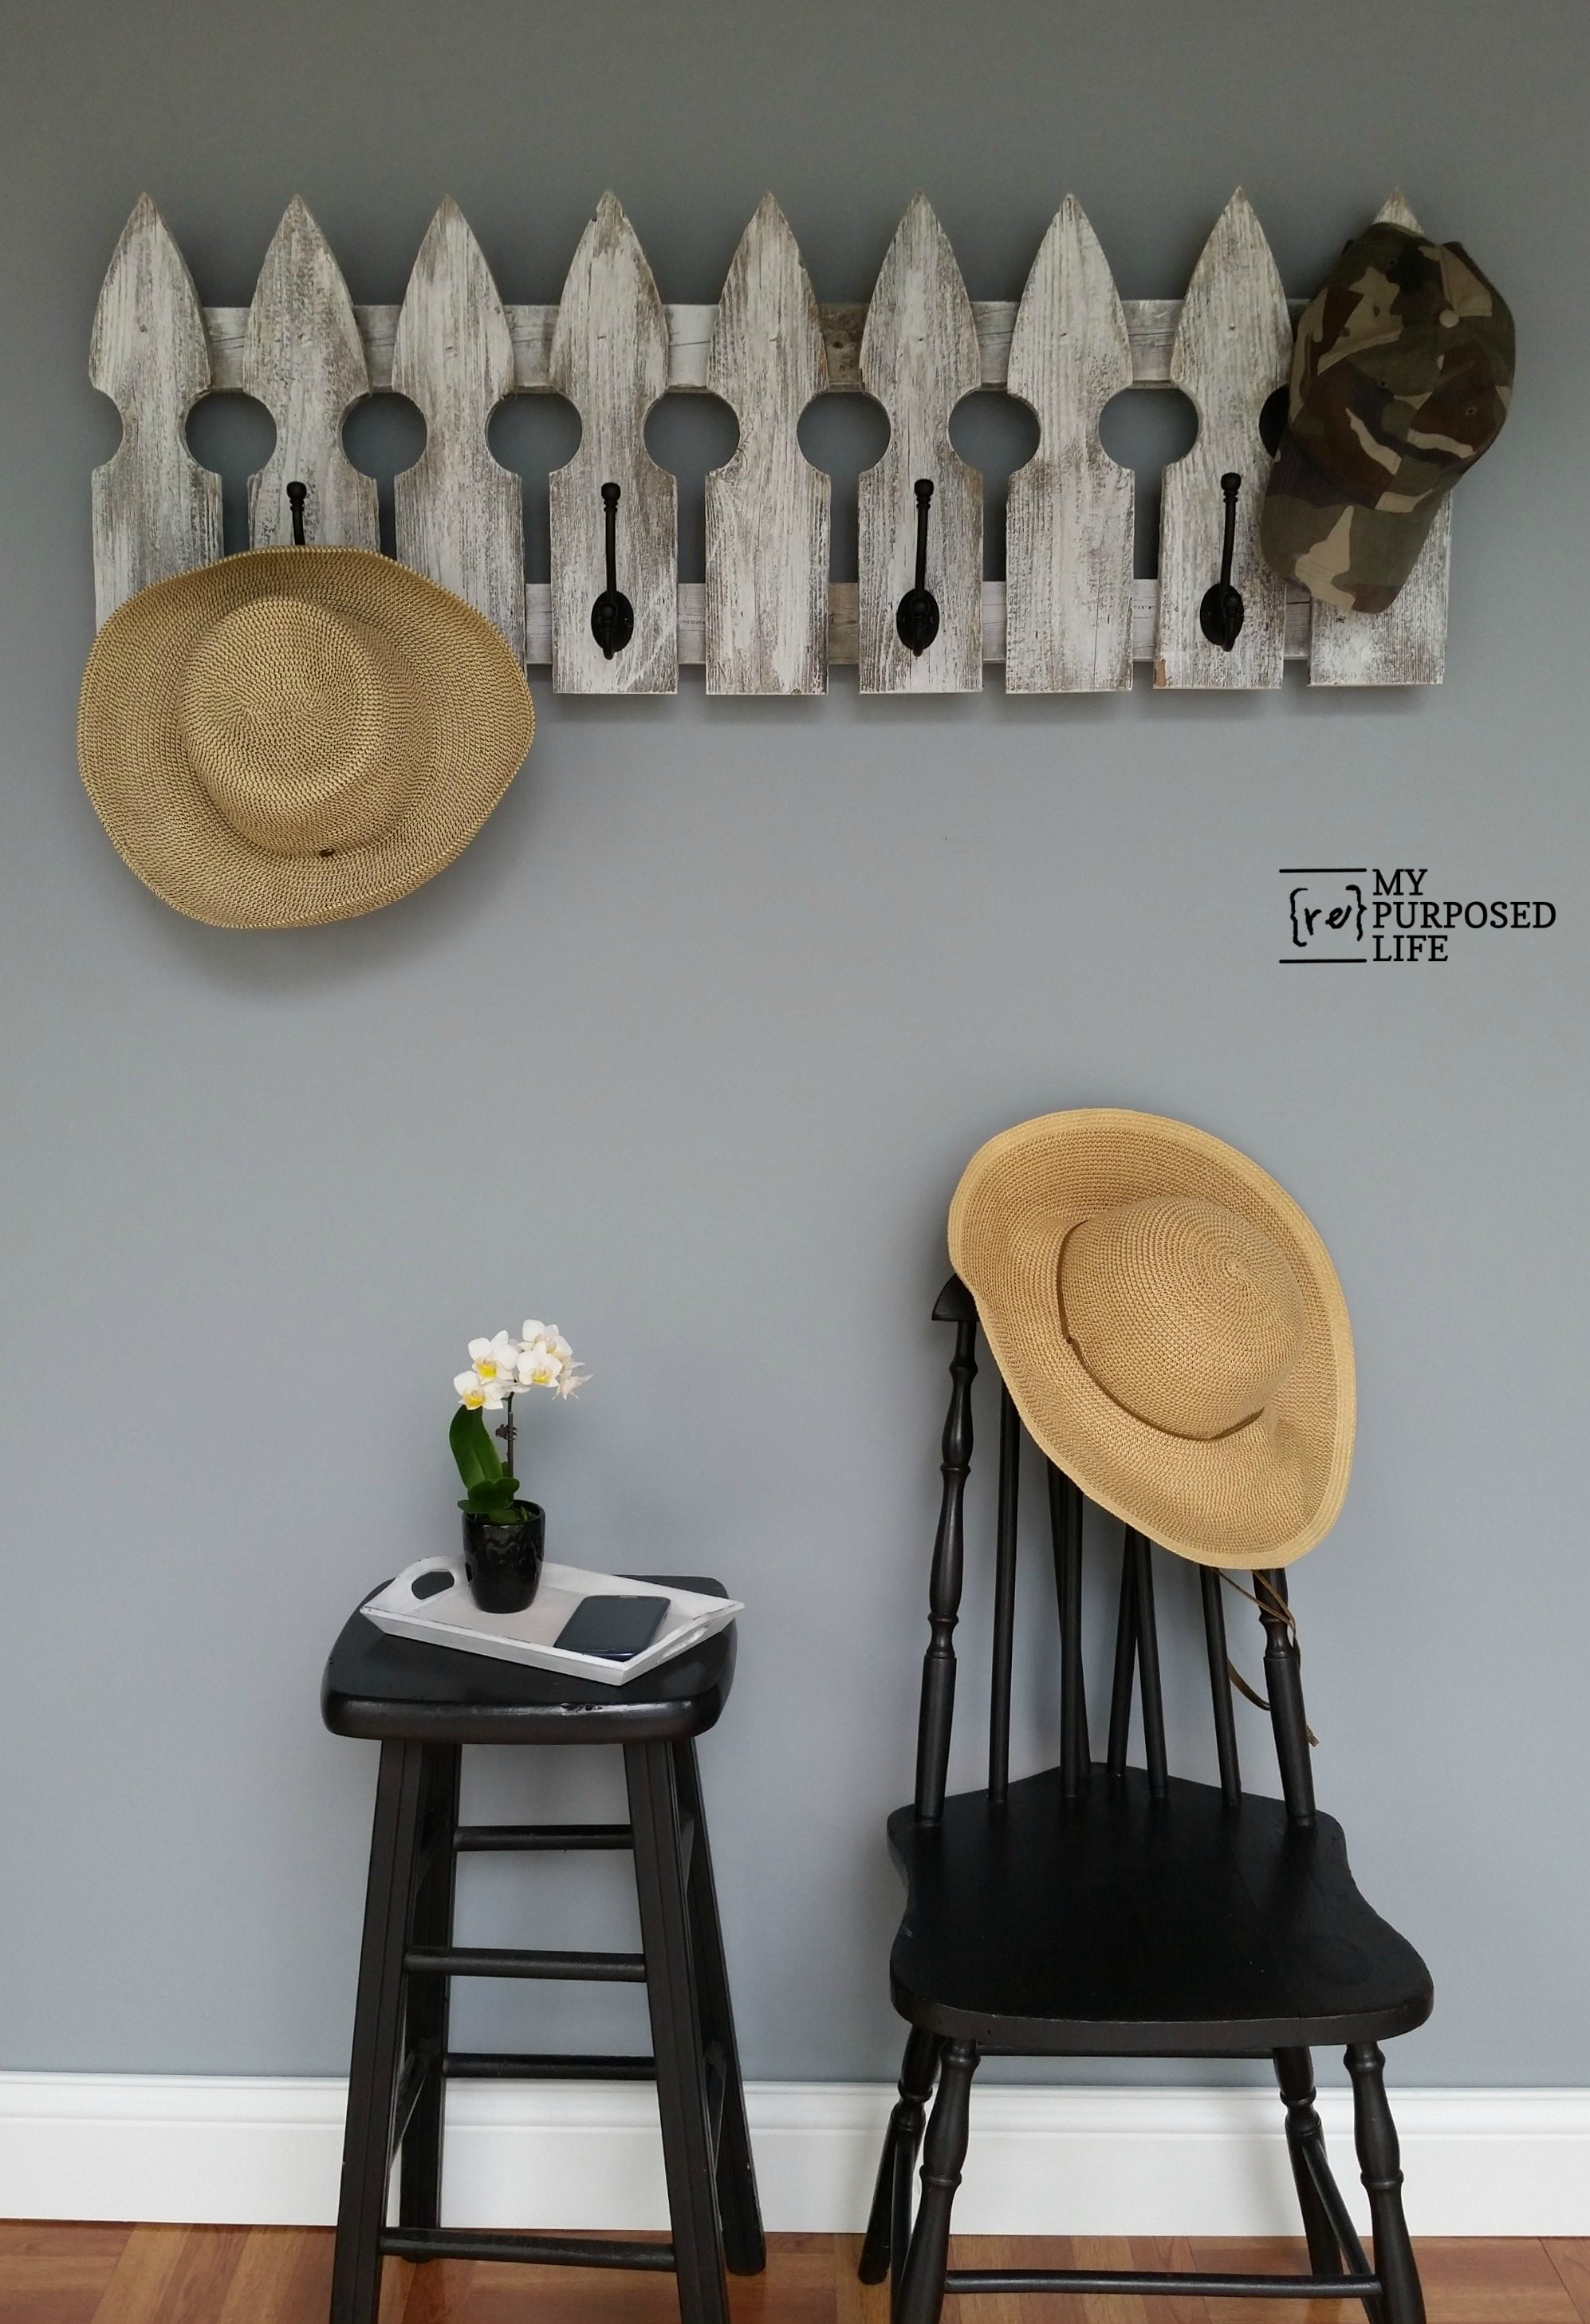 How to make this quick and easy picket fence coat rack project. The white wash is the icing on the cake to make this a perfect project for your home. #MyRepurposedLife #easy #quick #diy #project #coatrack #reclaimed #picket #fence via @repurposedlife